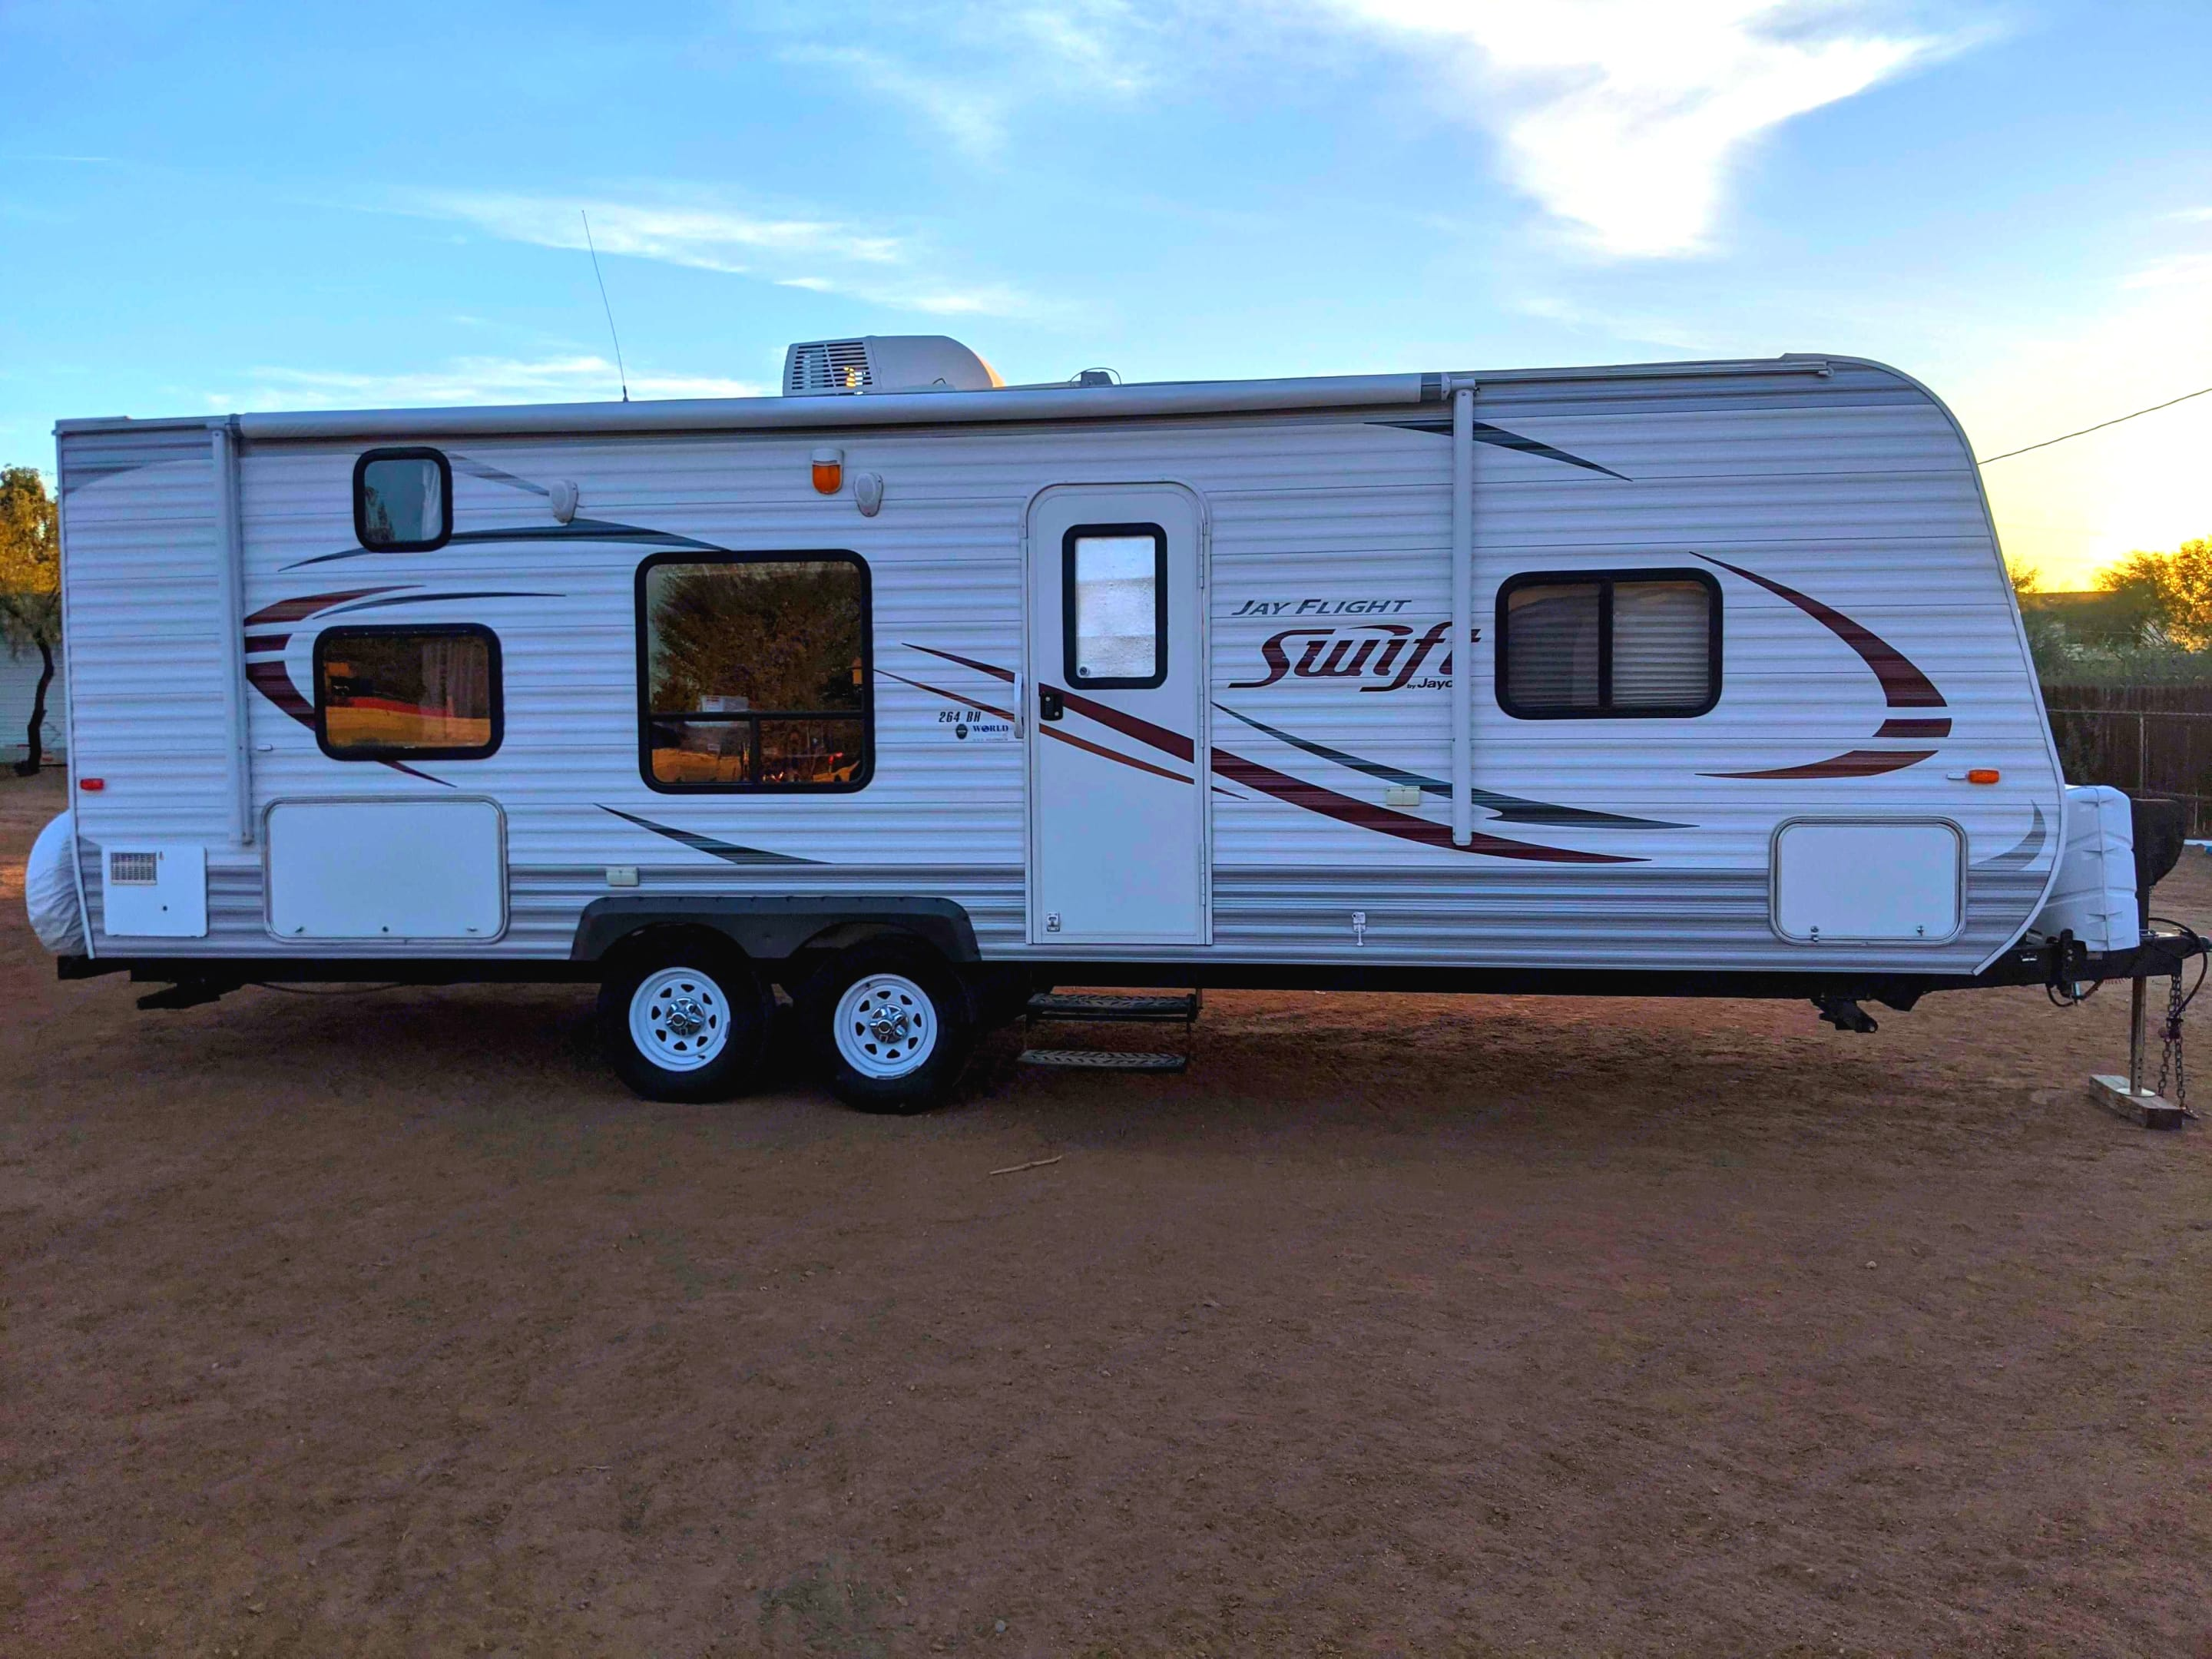 Windows for each bunk in the back, large dining table window, door window, and front window for queen bed. Jayco Jay Flight Swift 2014